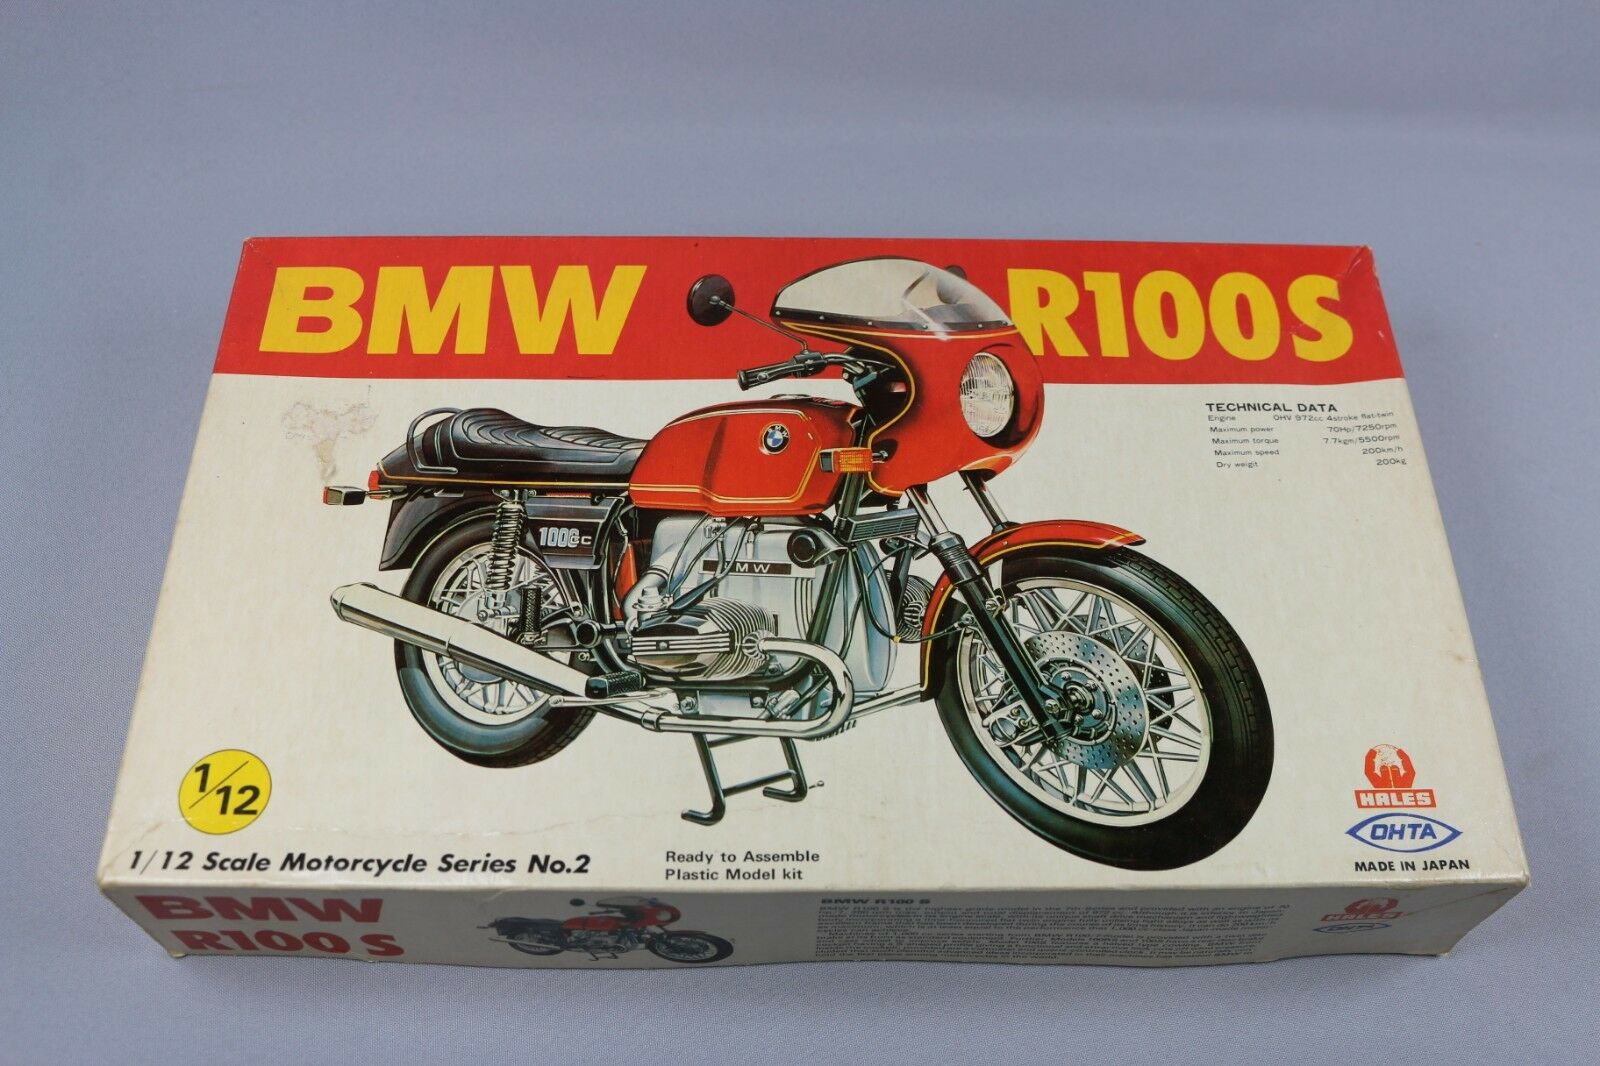 Zf1024 Hales Ohta 1 12 Model 12022-900 BMW R100s Motorcycles Serien No. 2